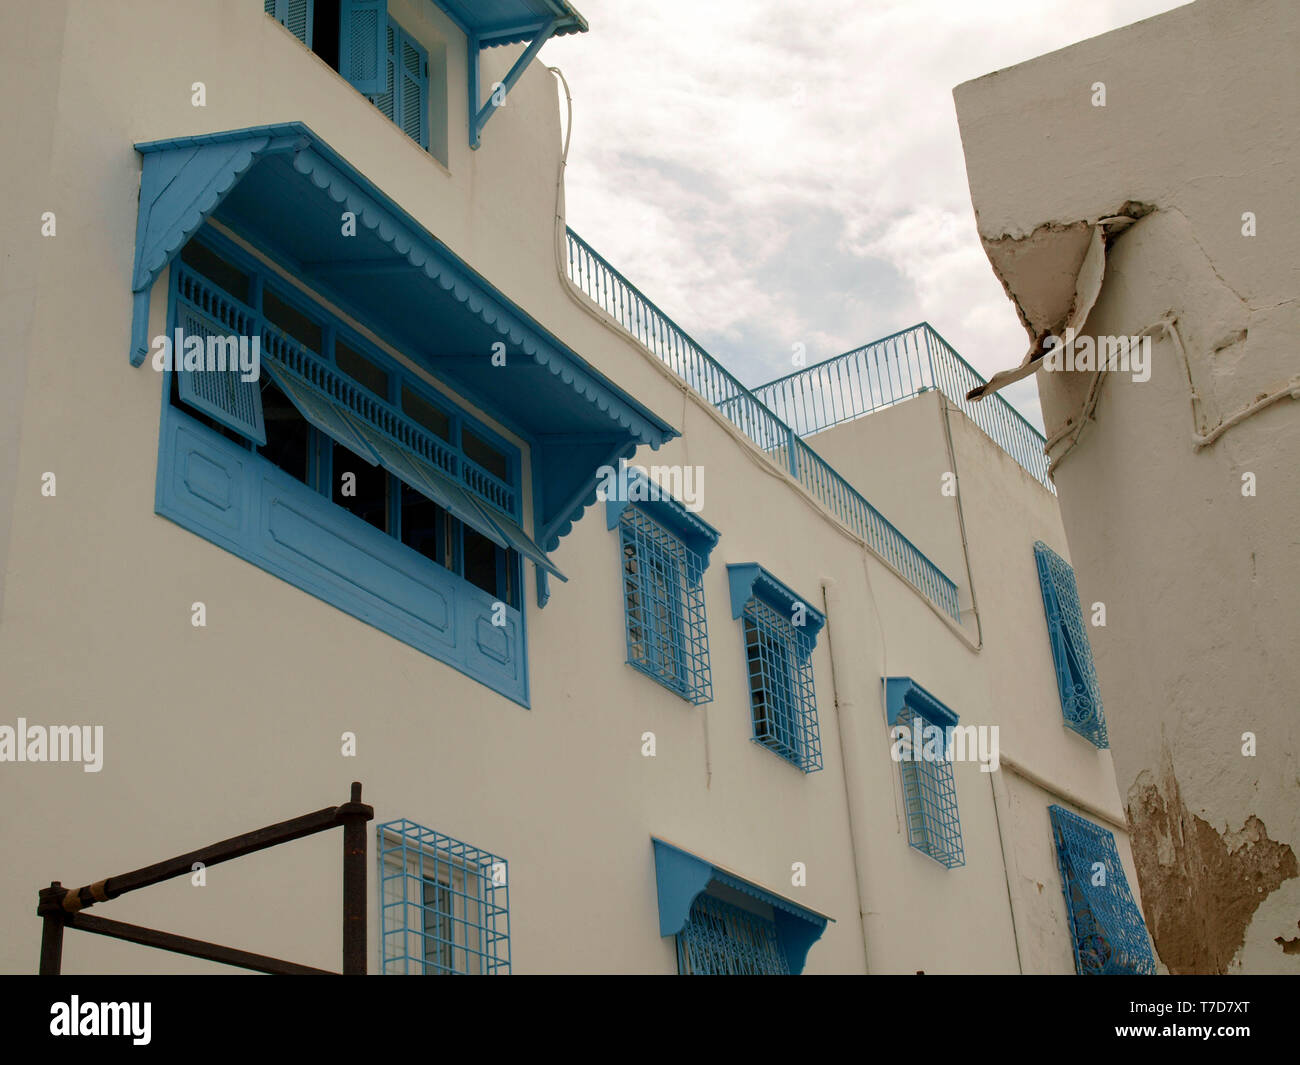 Windows and buildings close to the center of Sidi Bou Said, the famous village with traditional Tunisian architecture Stock Photo